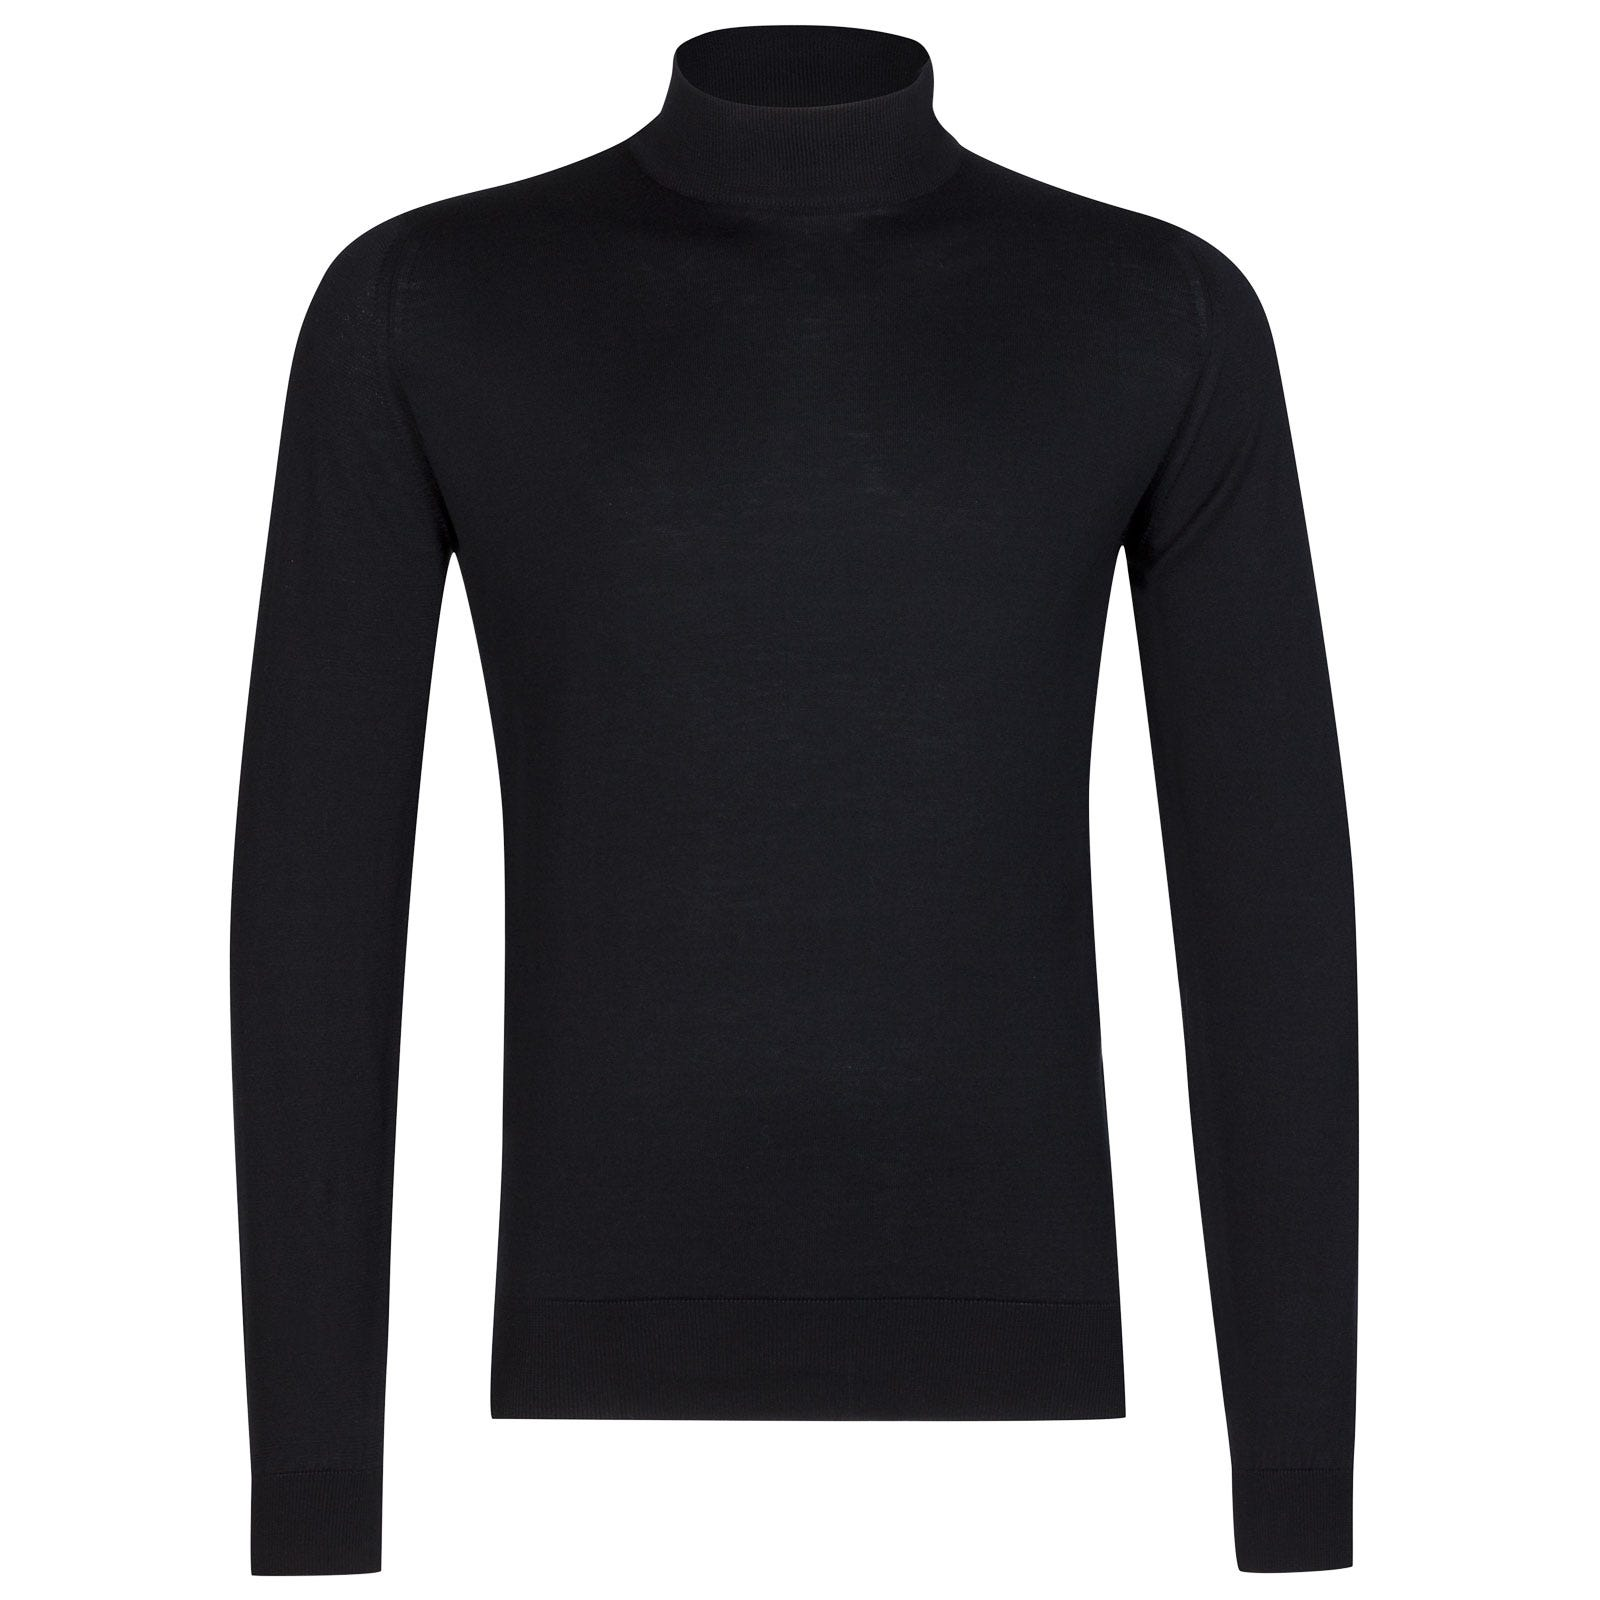 John Smedley Bradgate Sea Island Cotton Pullover in Black-M